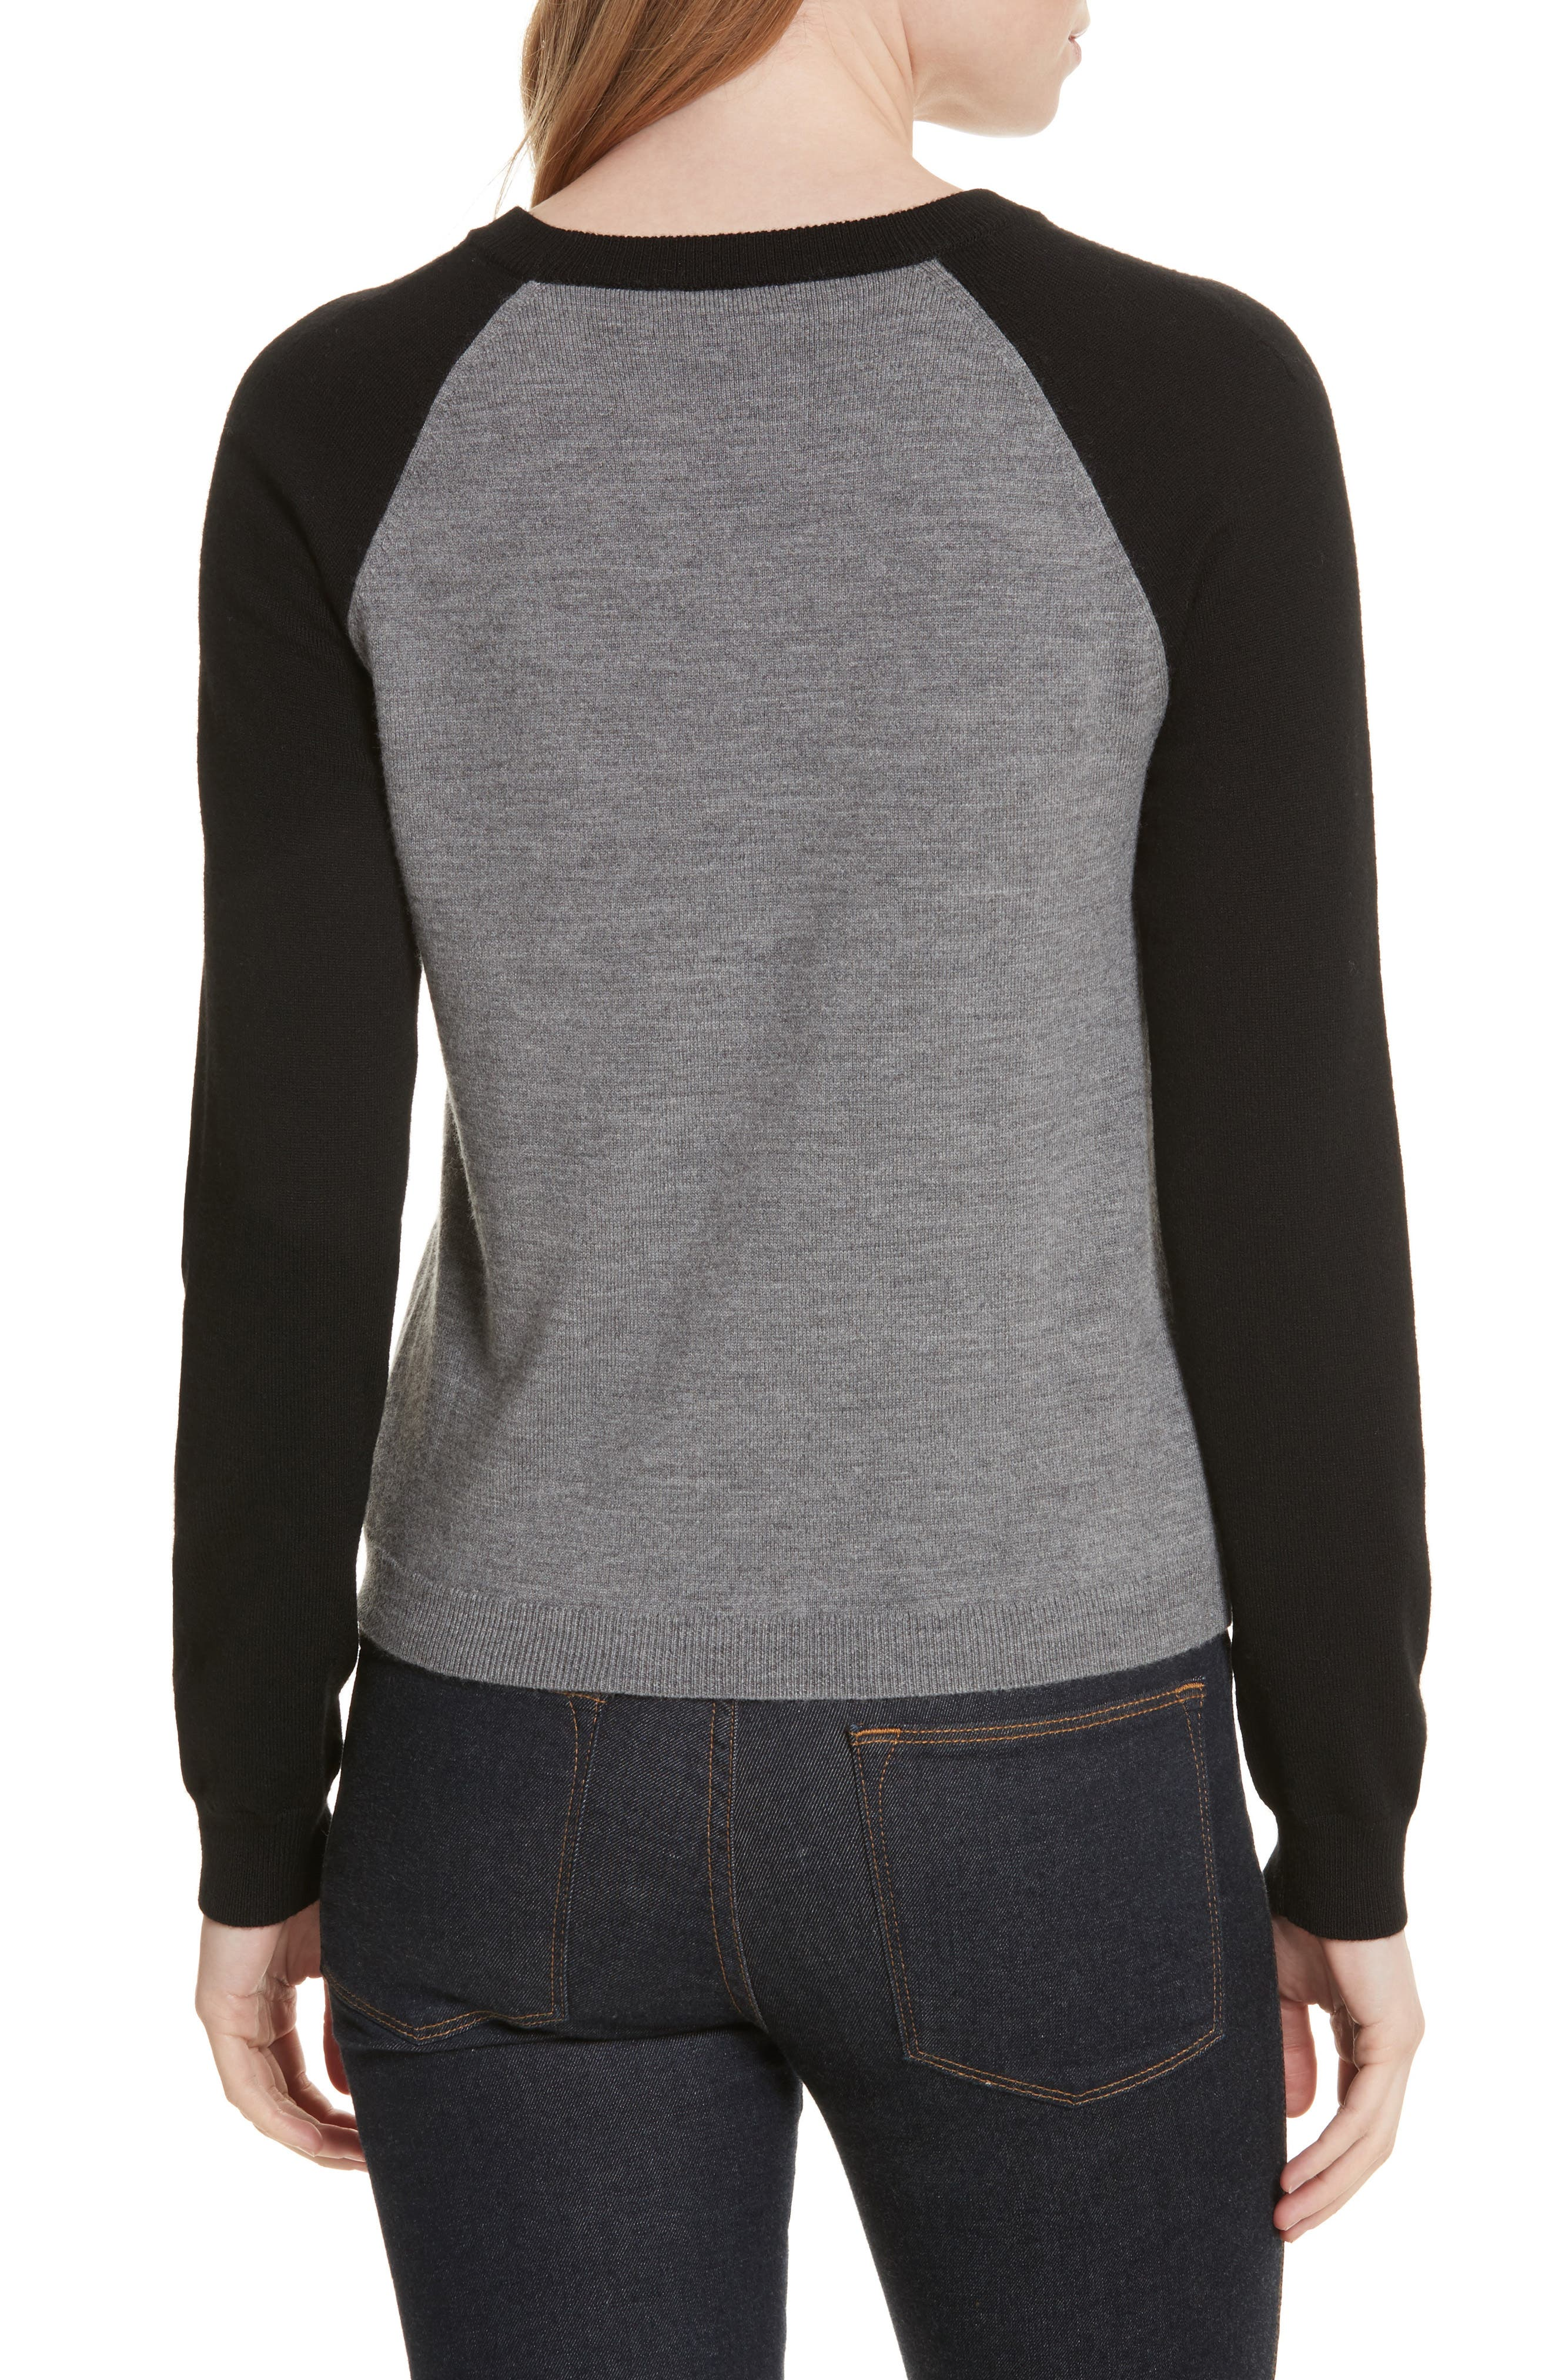 Gretta Limited Edition Pullover,                             Alternate thumbnail 2, color,                             007